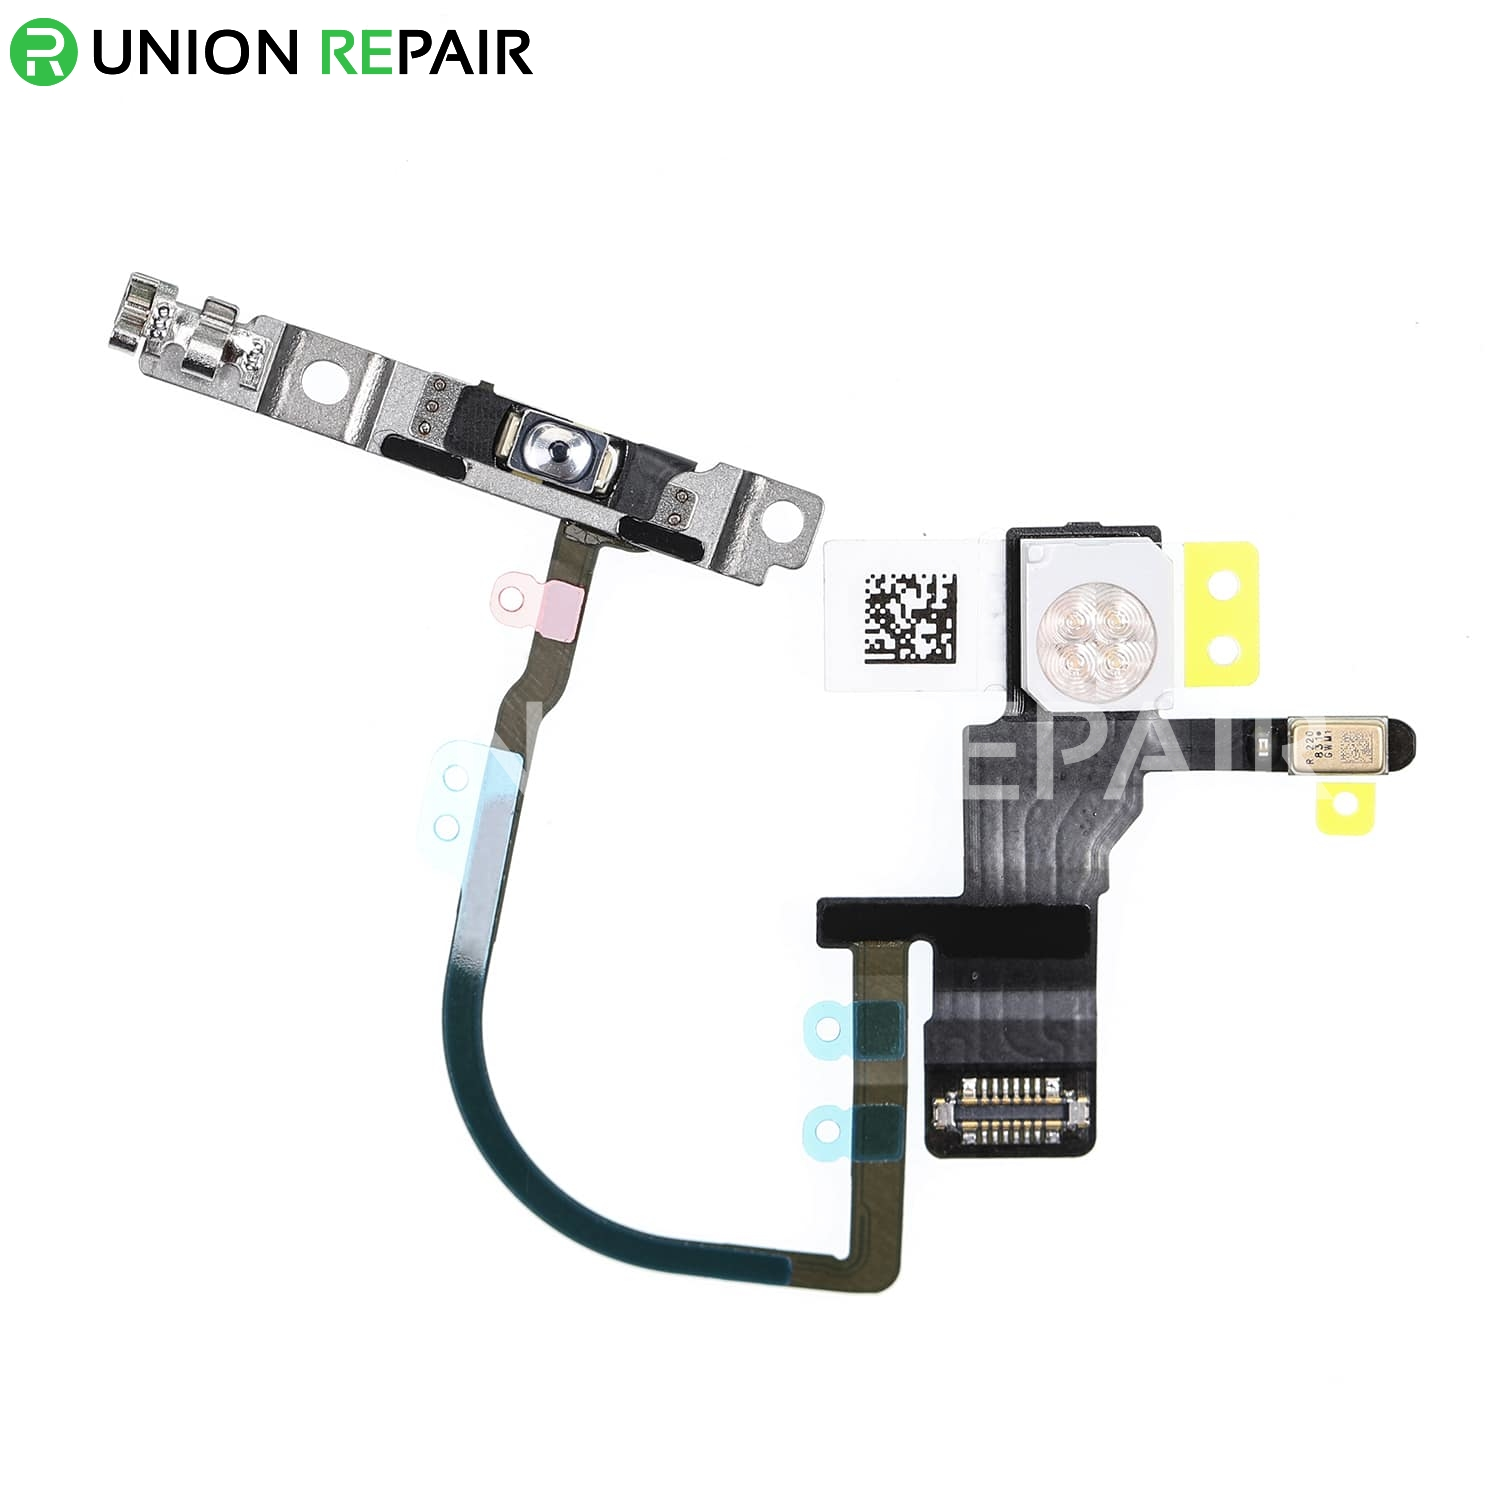 Replacement for iPhone Xs/Xs Max Power Button Flex Cable